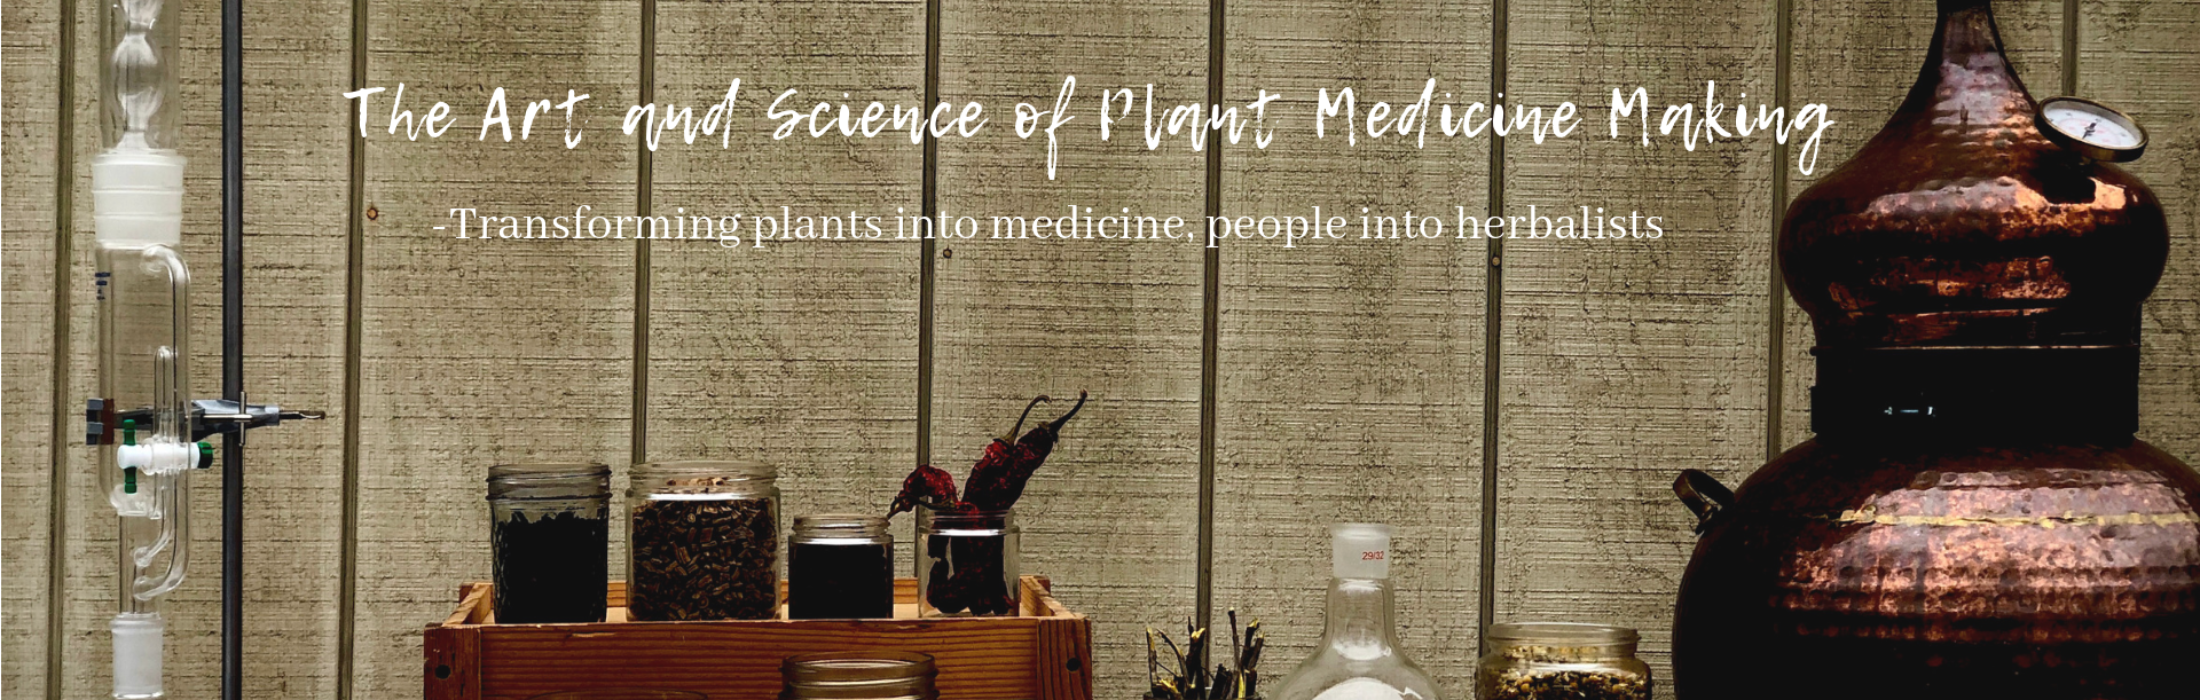 The Art and Science of Plant Medicine Making (4)